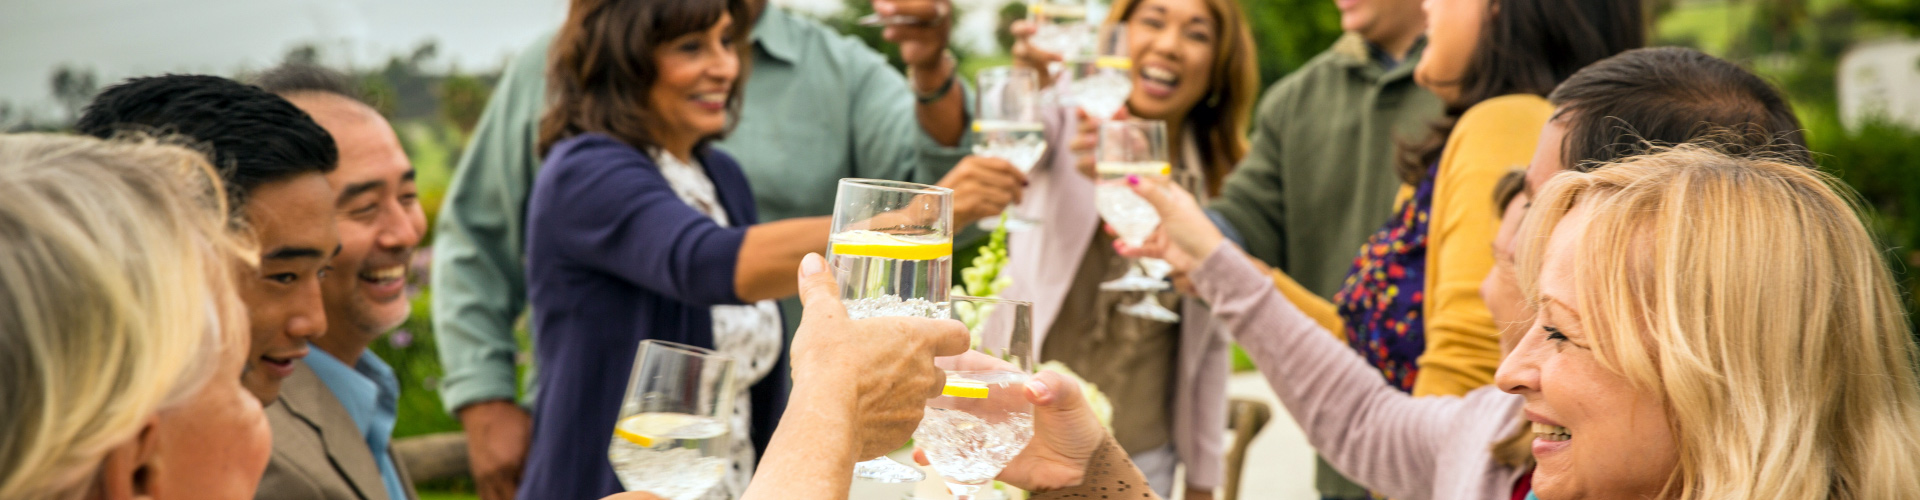 A group of people raise their glasses to toast to a loved one at an outdoor celebration.